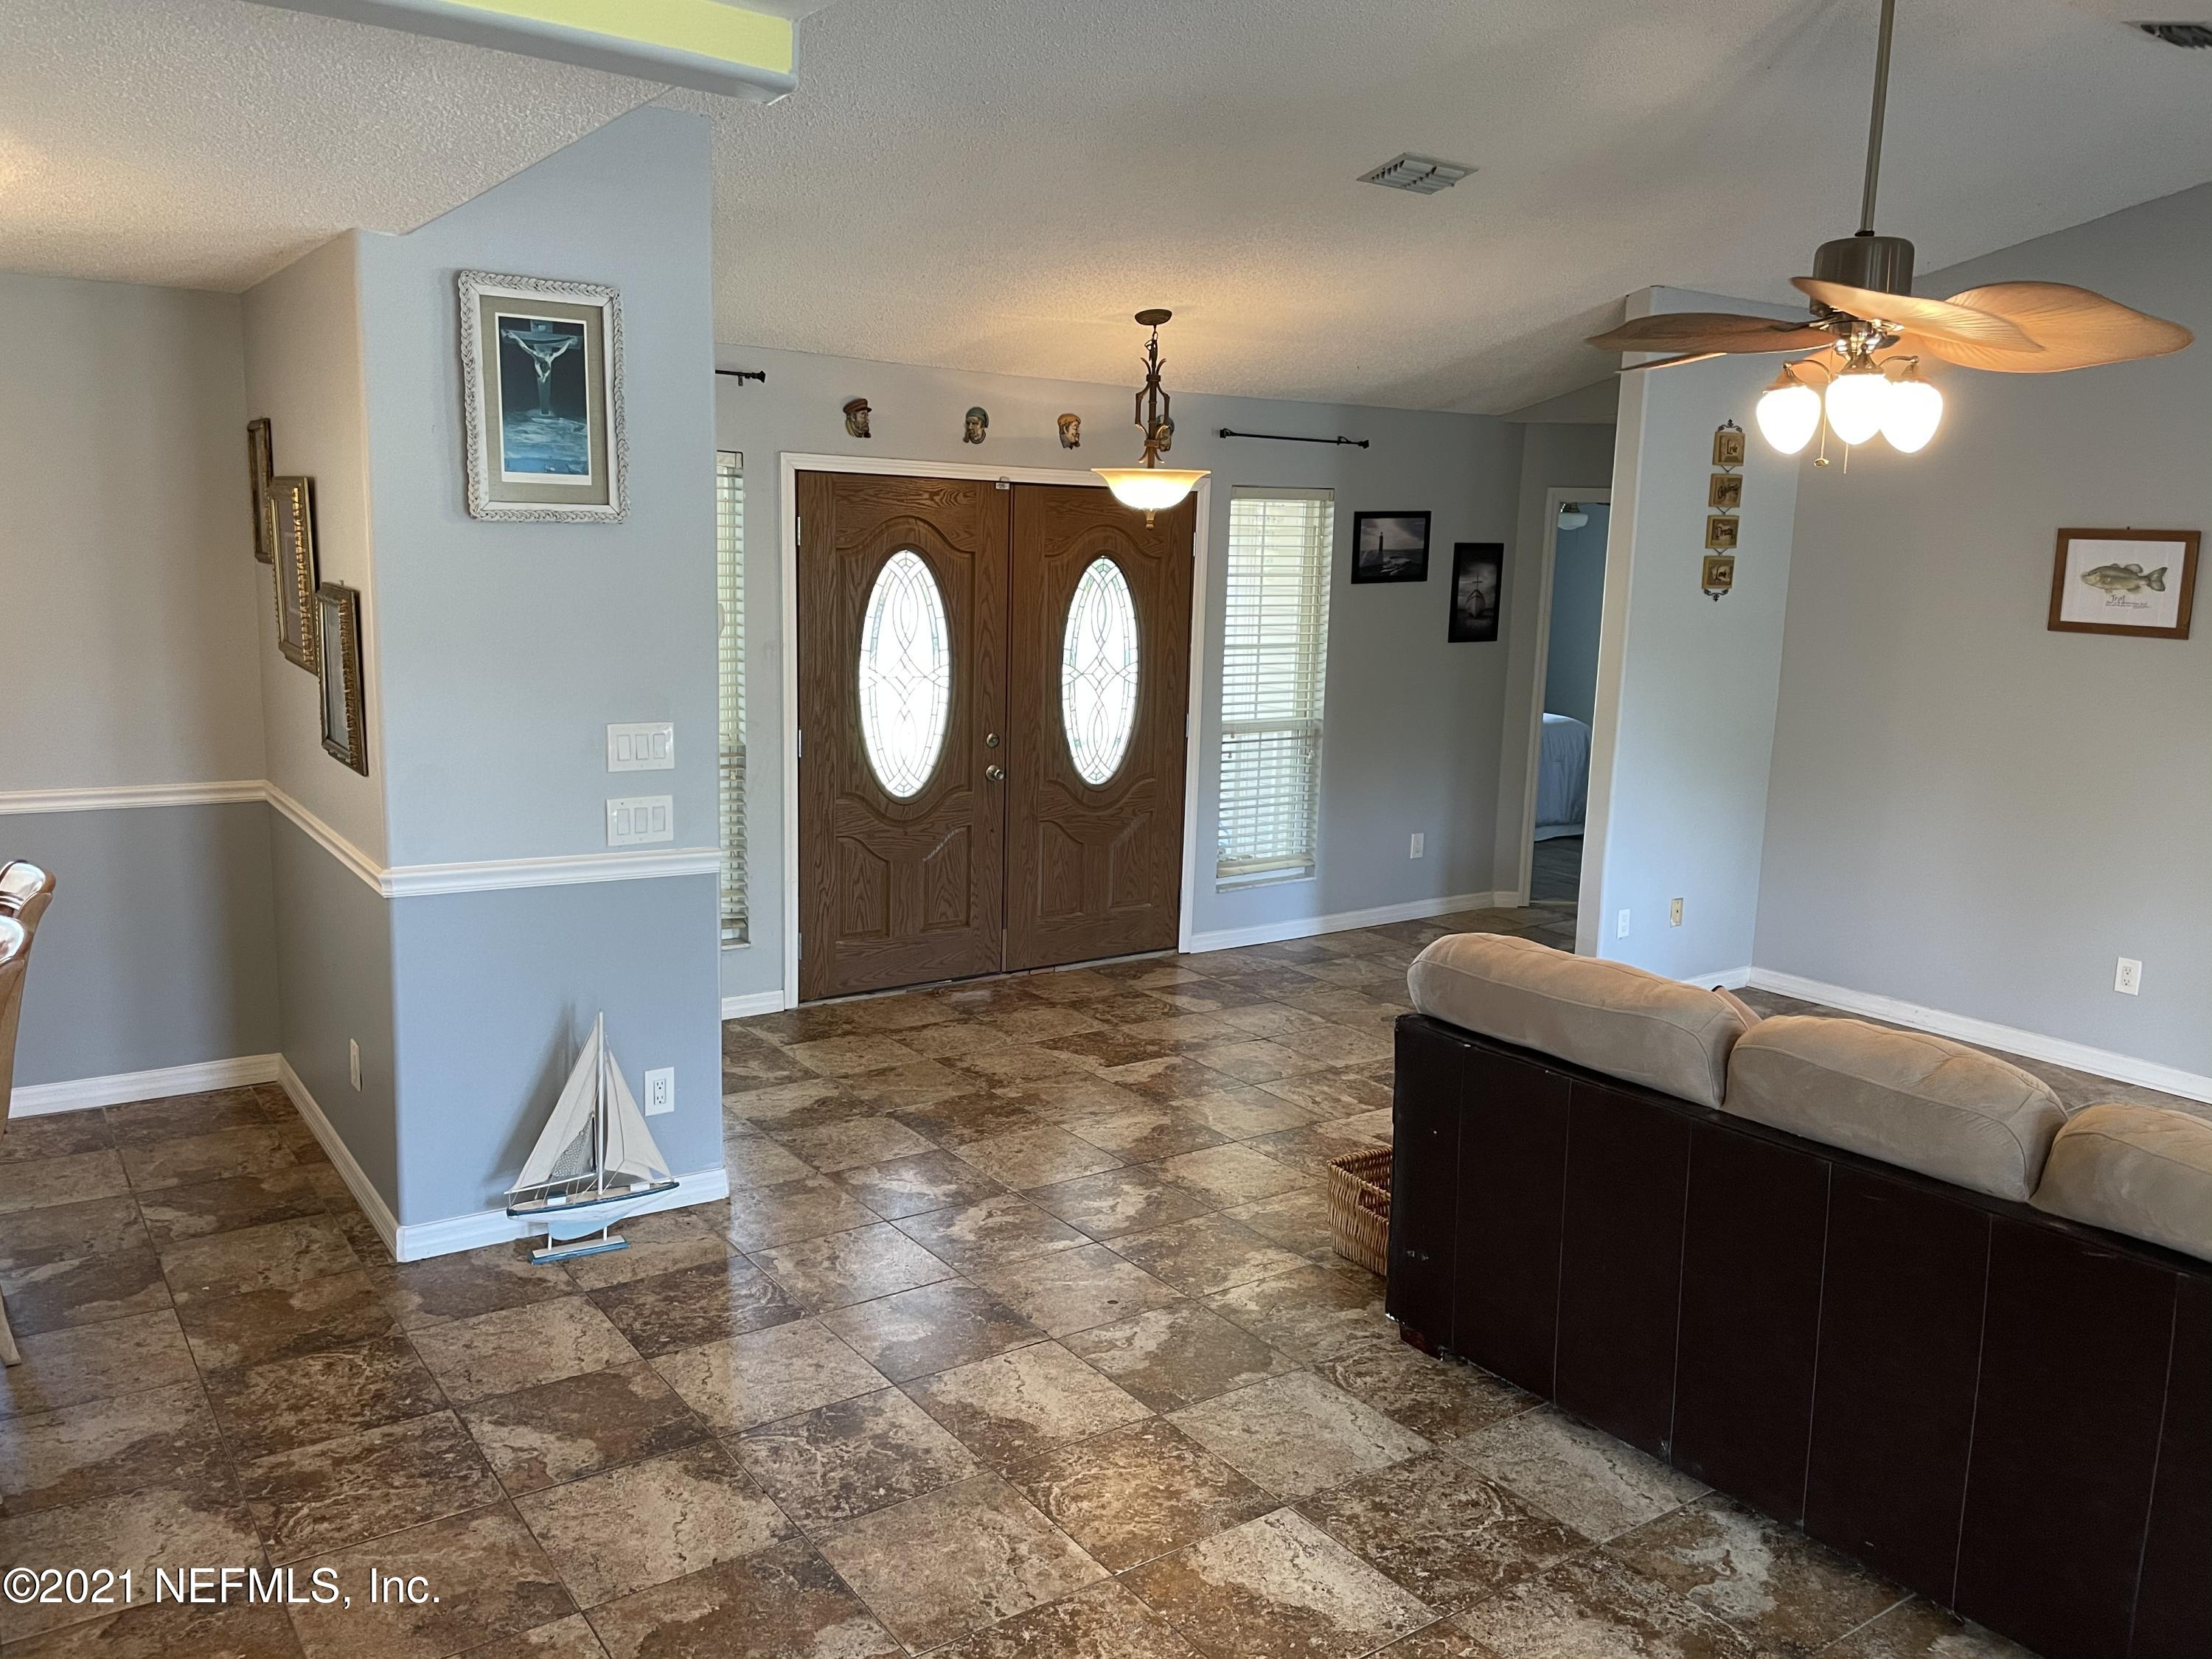 1999 CORNELL, MIDDLEBURG, FLORIDA 32068, 3 Bedrooms Bedrooms, ,2 BathroomsBathrooms,Residential,For sale,CORNELL,1101705